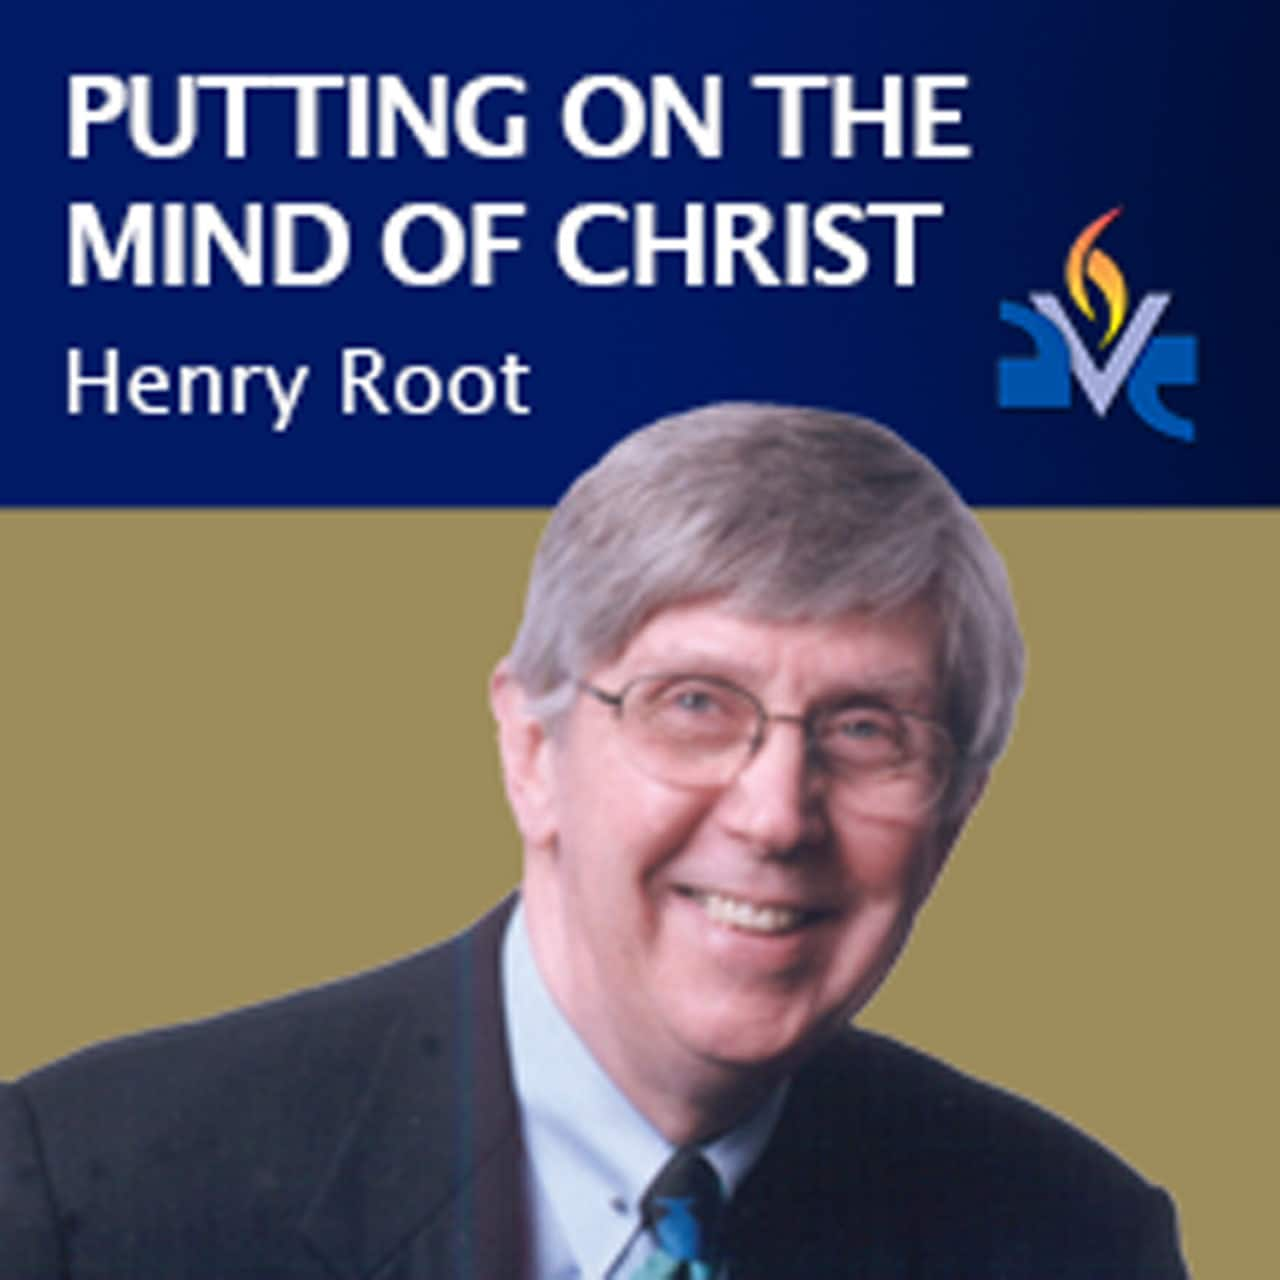 Ave Maria Radio: Putting on the Mind of Christ